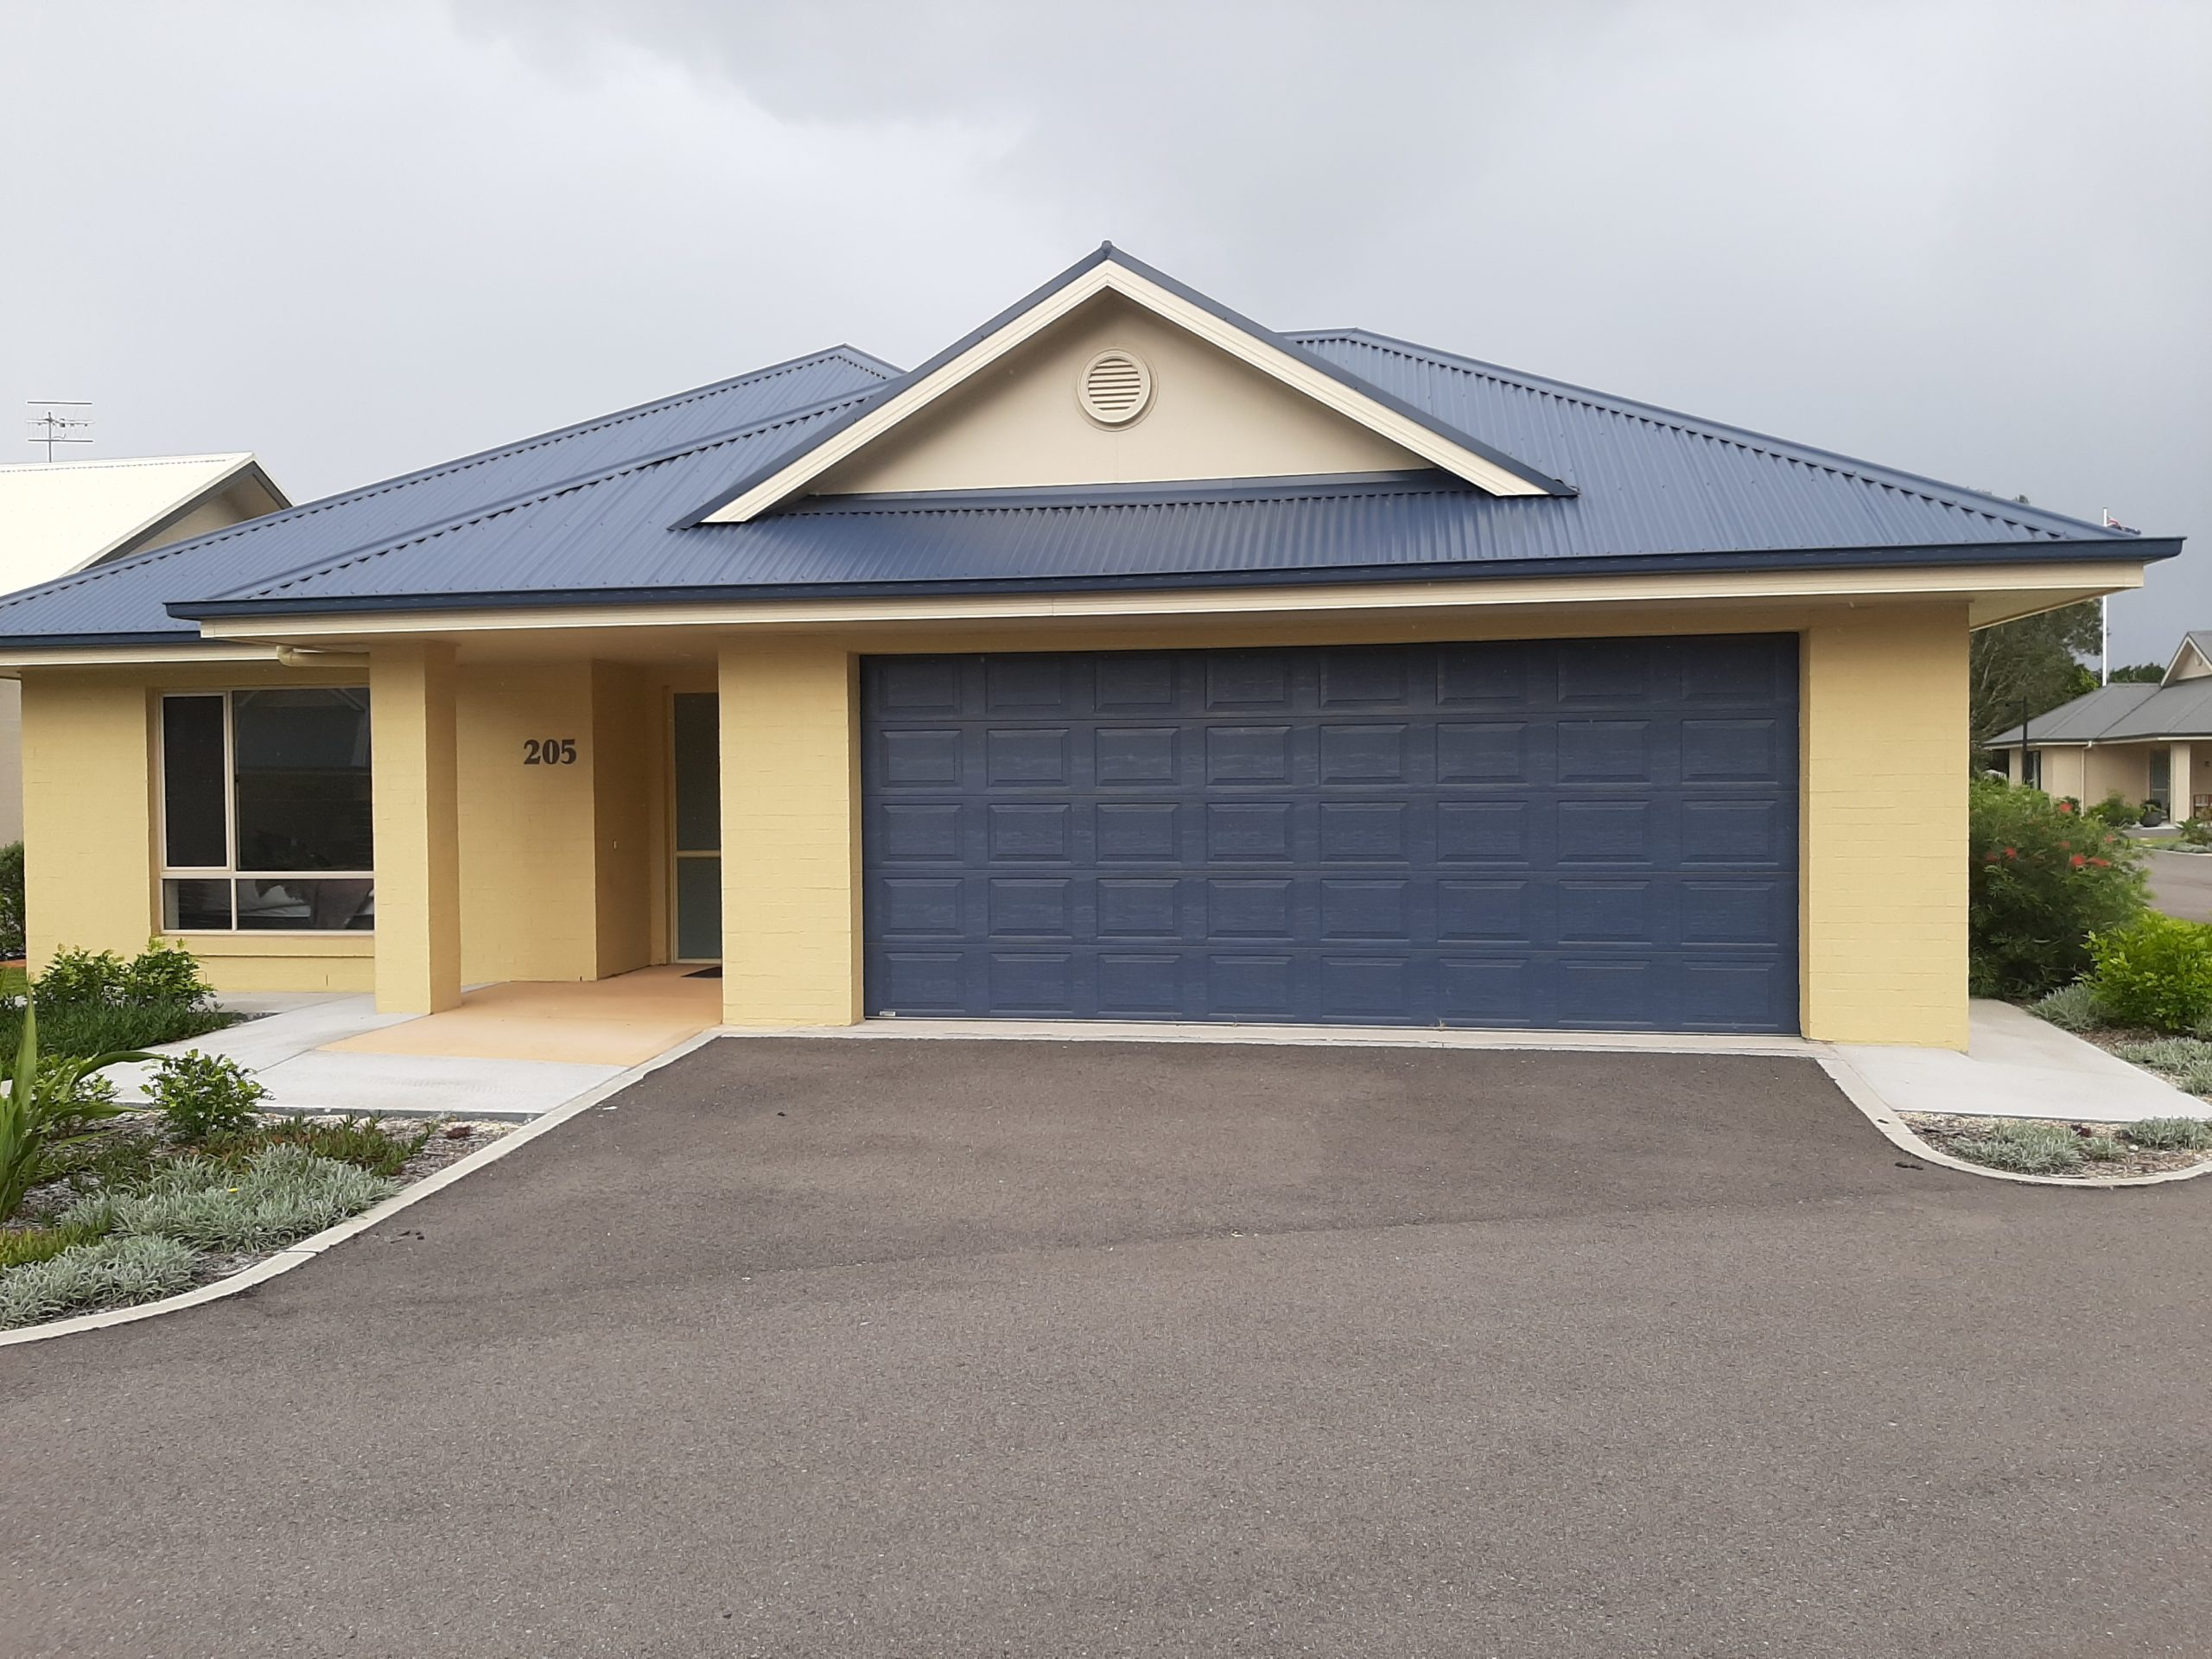 House-205-scaled-1 | RSL LifeCare - provide care and service to war veterans, retirement villages and accommodation, aged care services and assisted living